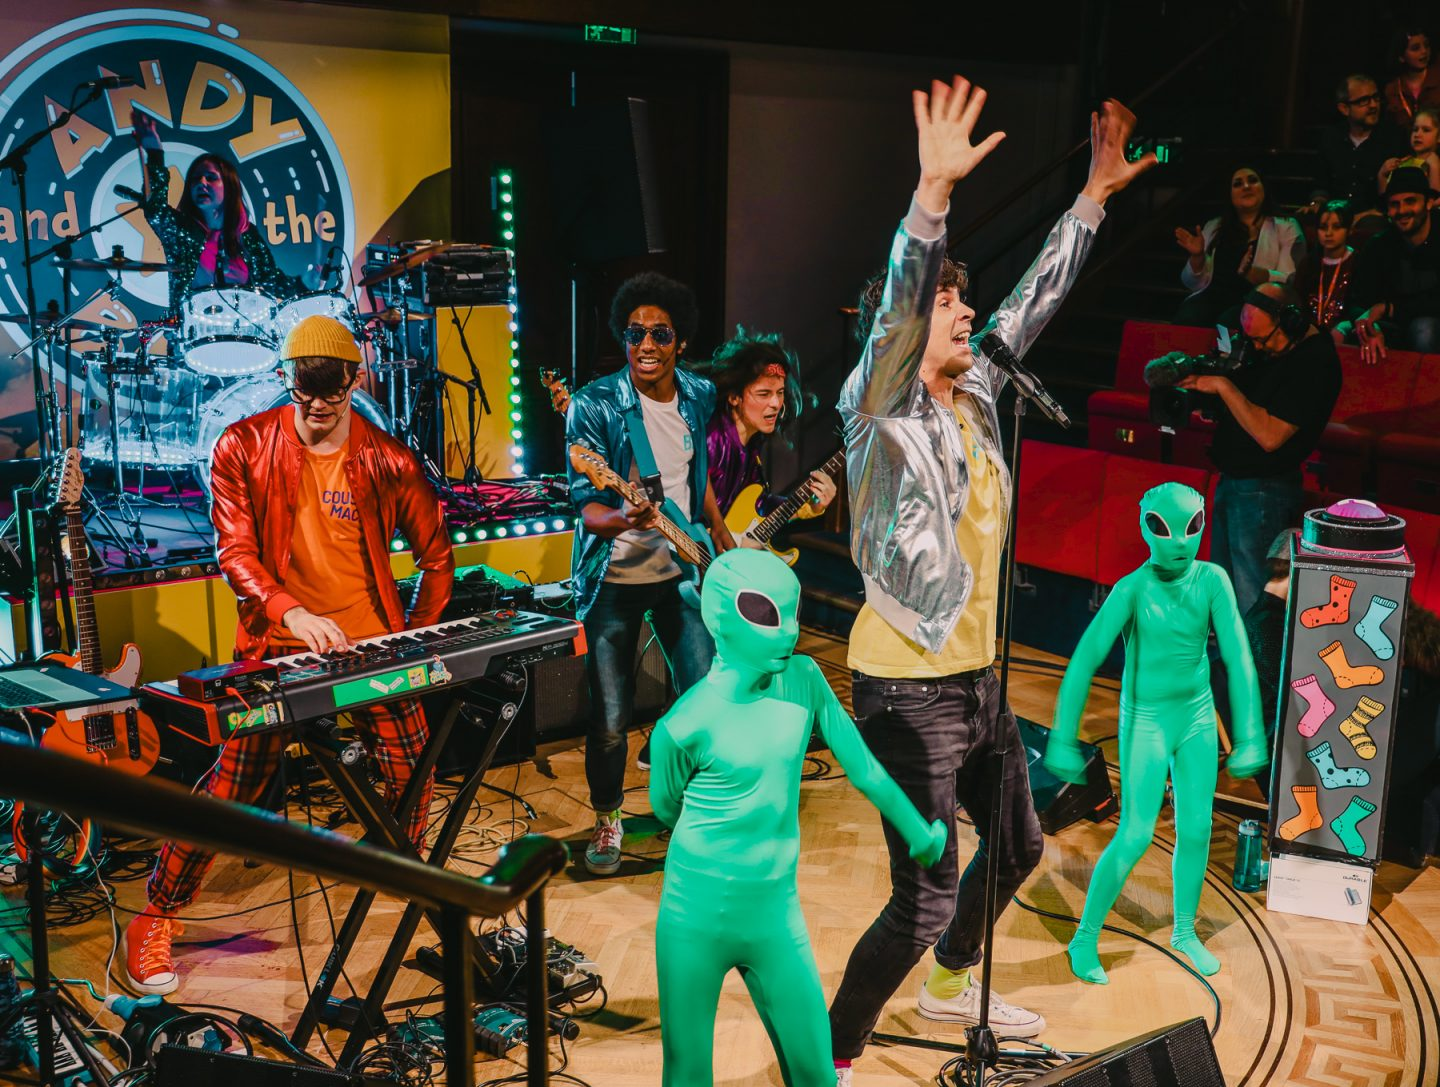 Andy and The Band with aliens, live BBC screening